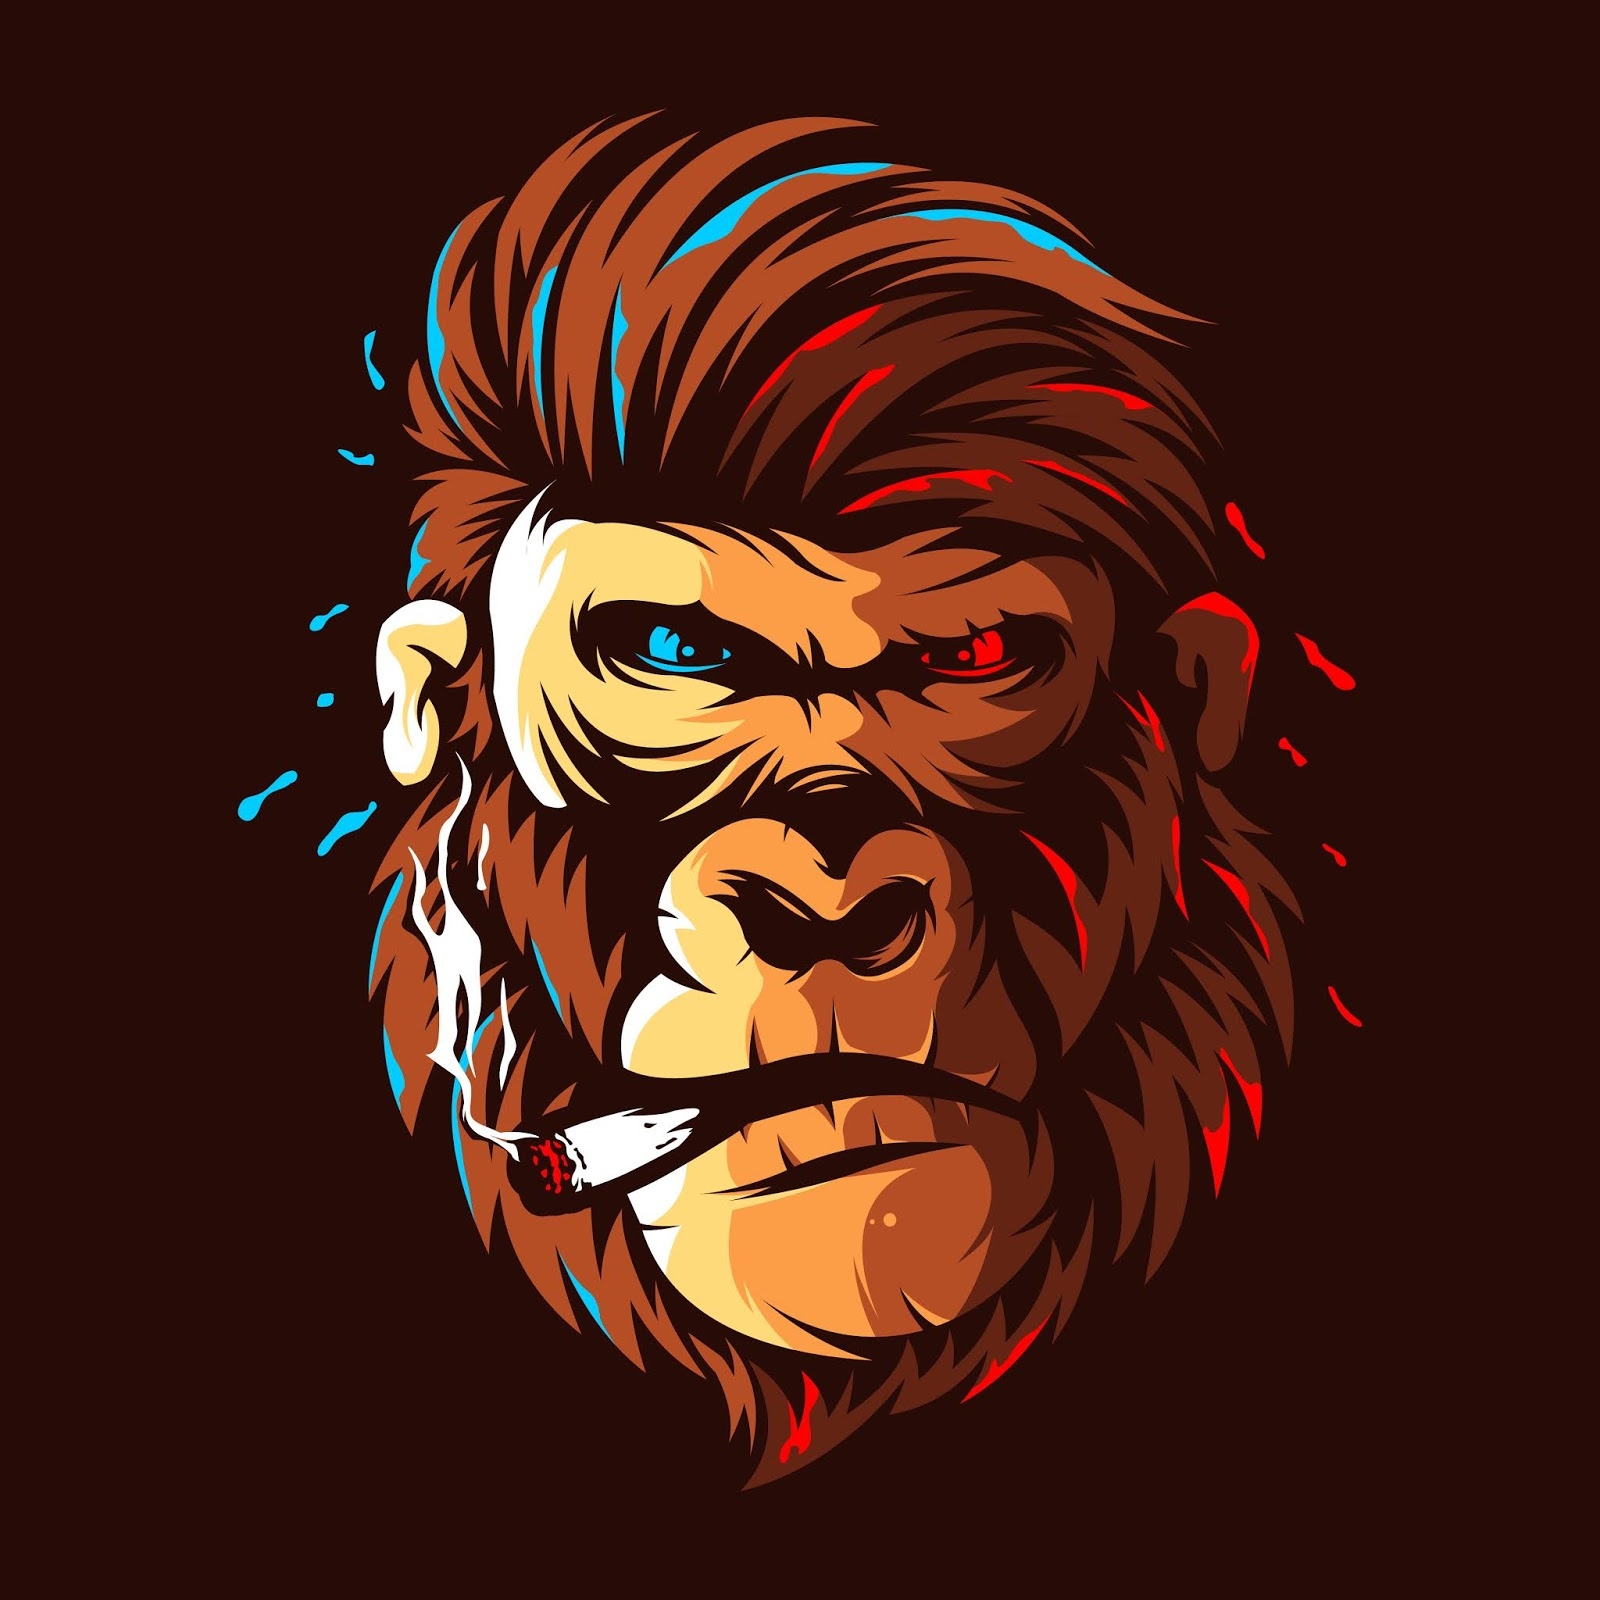 Gorilla Head Illustration Colour Logo Design Free Download Vector CDR, AI, EPS and PNG Formats